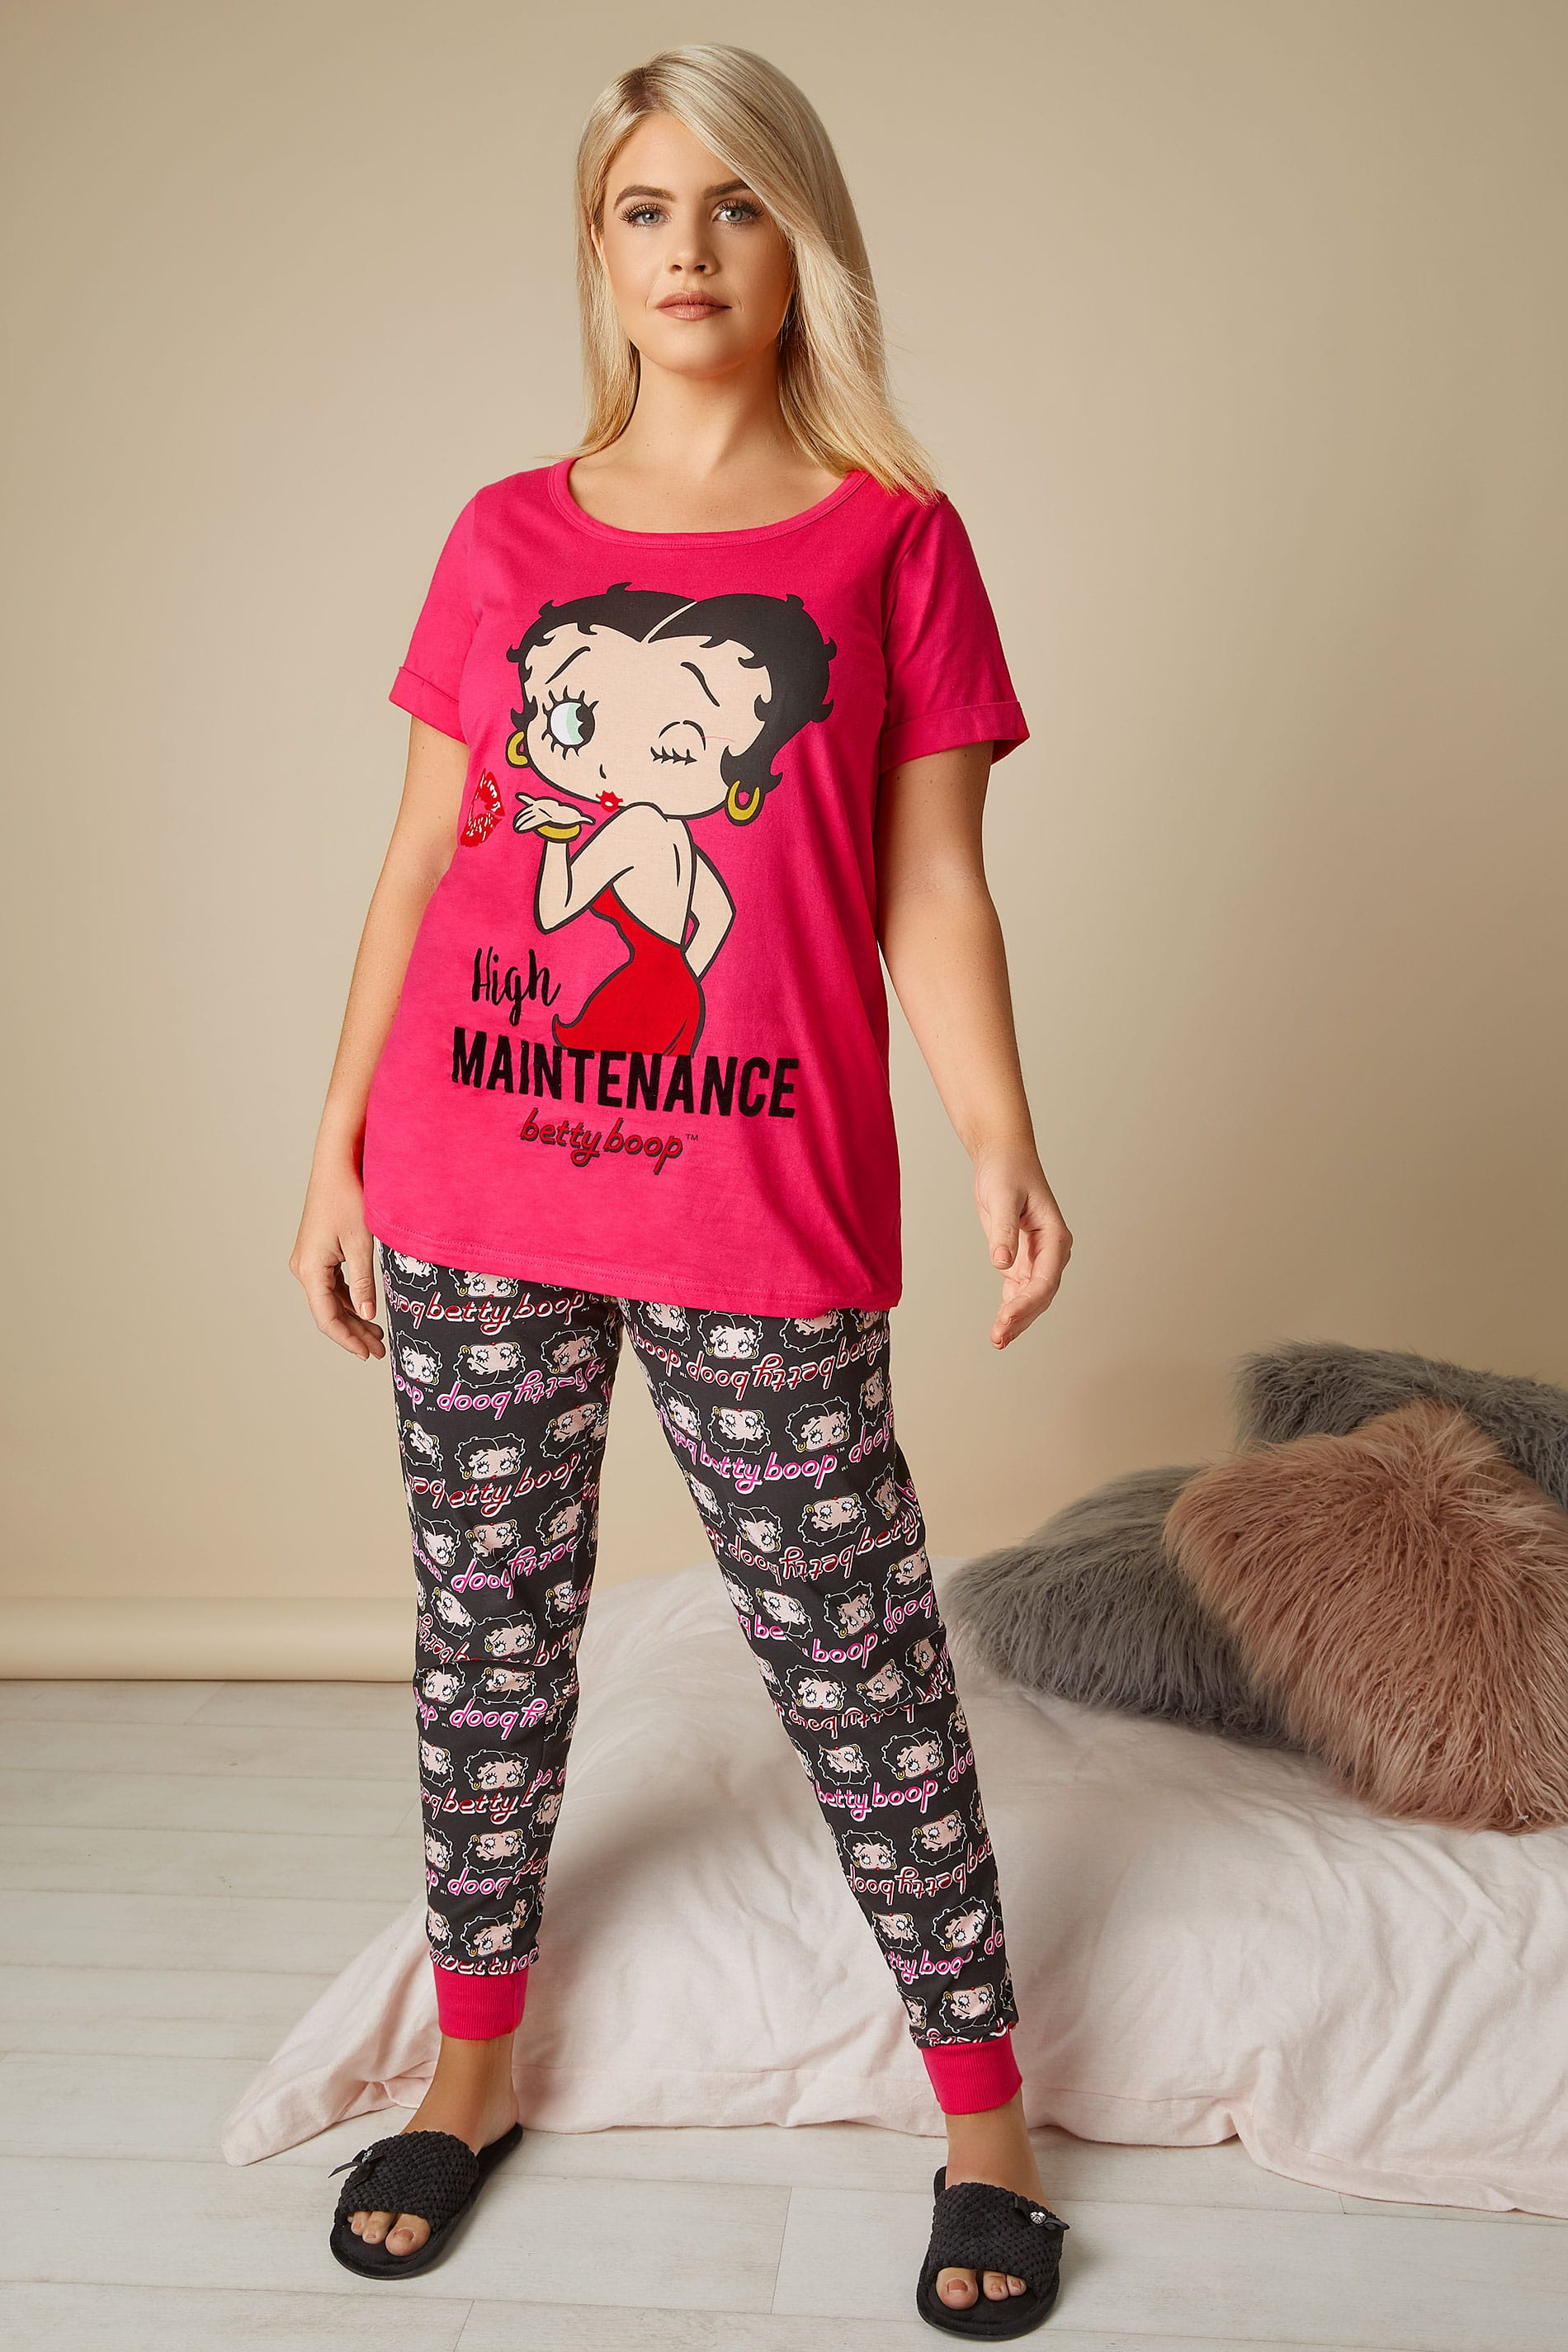 pink schwarz betty boop oberteil schlafanzughose pyjama set in gro en gr en 44 64. Black Bedroom Furniture Sets. Home Design Ideas